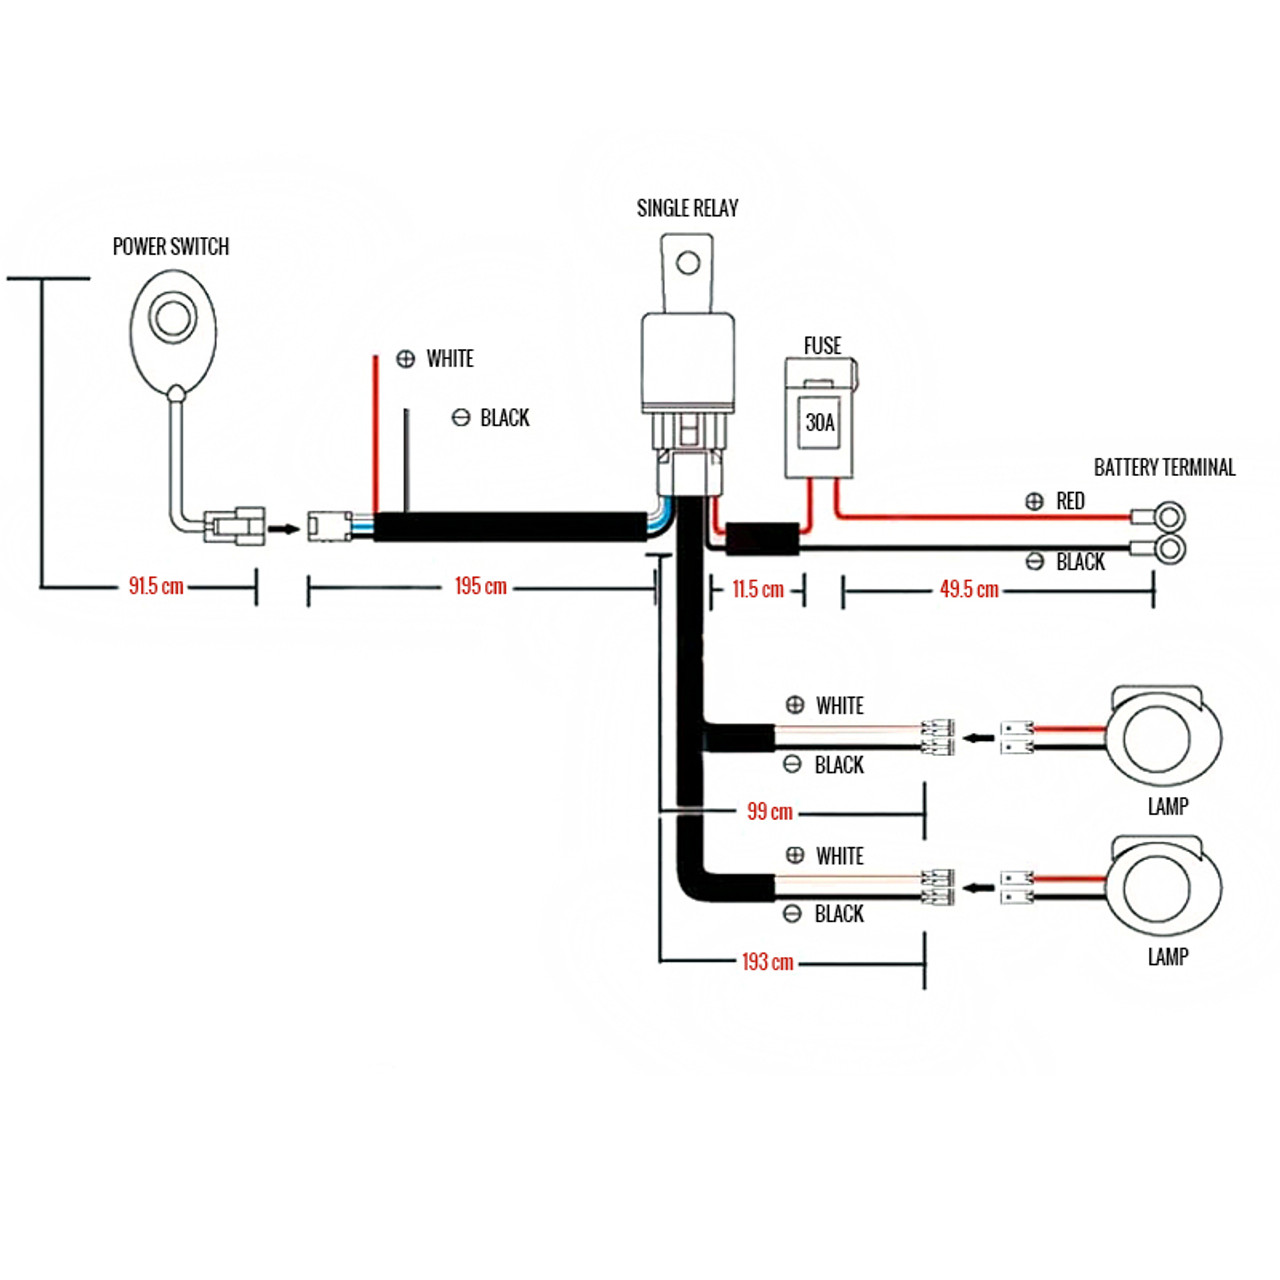 Spec D Wiring Diagrams Of Lights - Layout For 2006 Ford Fusion Aftermarket  Stereo Wiring - rccar-wiring.2010menanti.jeanjaures37.fr | Spec D Wiring Diagrams Of Lights |  | Wiring Diagram Resource